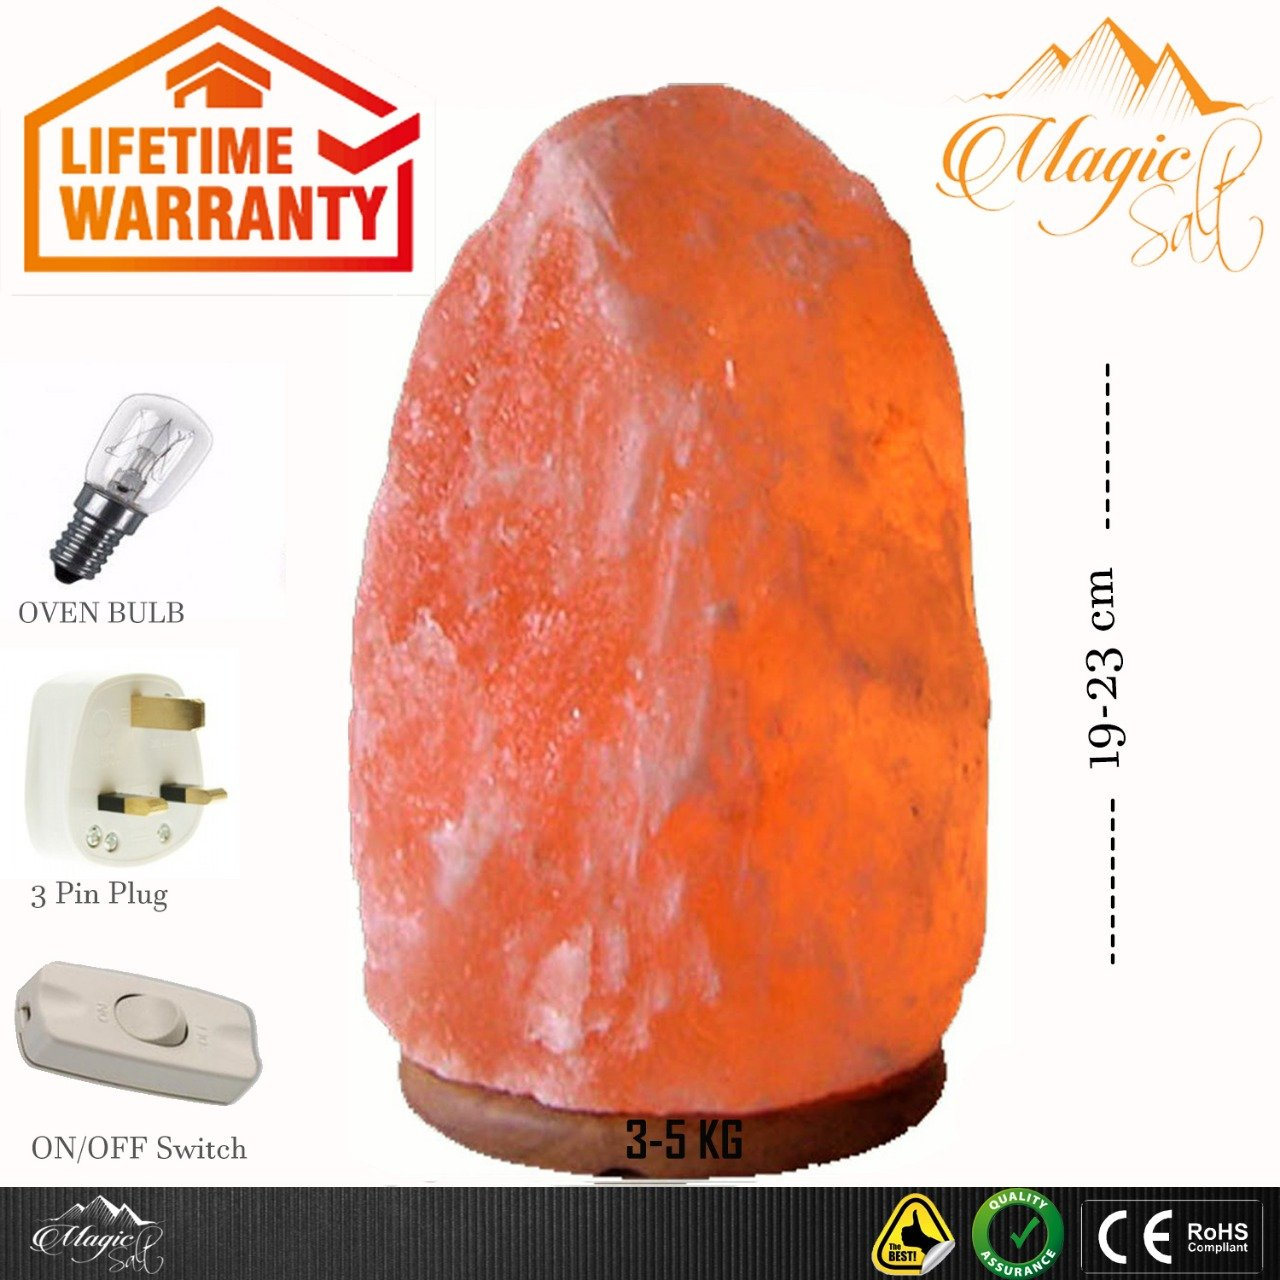 BY Magic Salt Himalayan crystal pink rock salt lamp weight 3-5 kg height 21-23 cm - with all electric fittings CE certified UK standard 3 pin cable and e14 oven bulb, polished wood base -Premium Quality Fine salt Crystals directly comes from Himalayan M